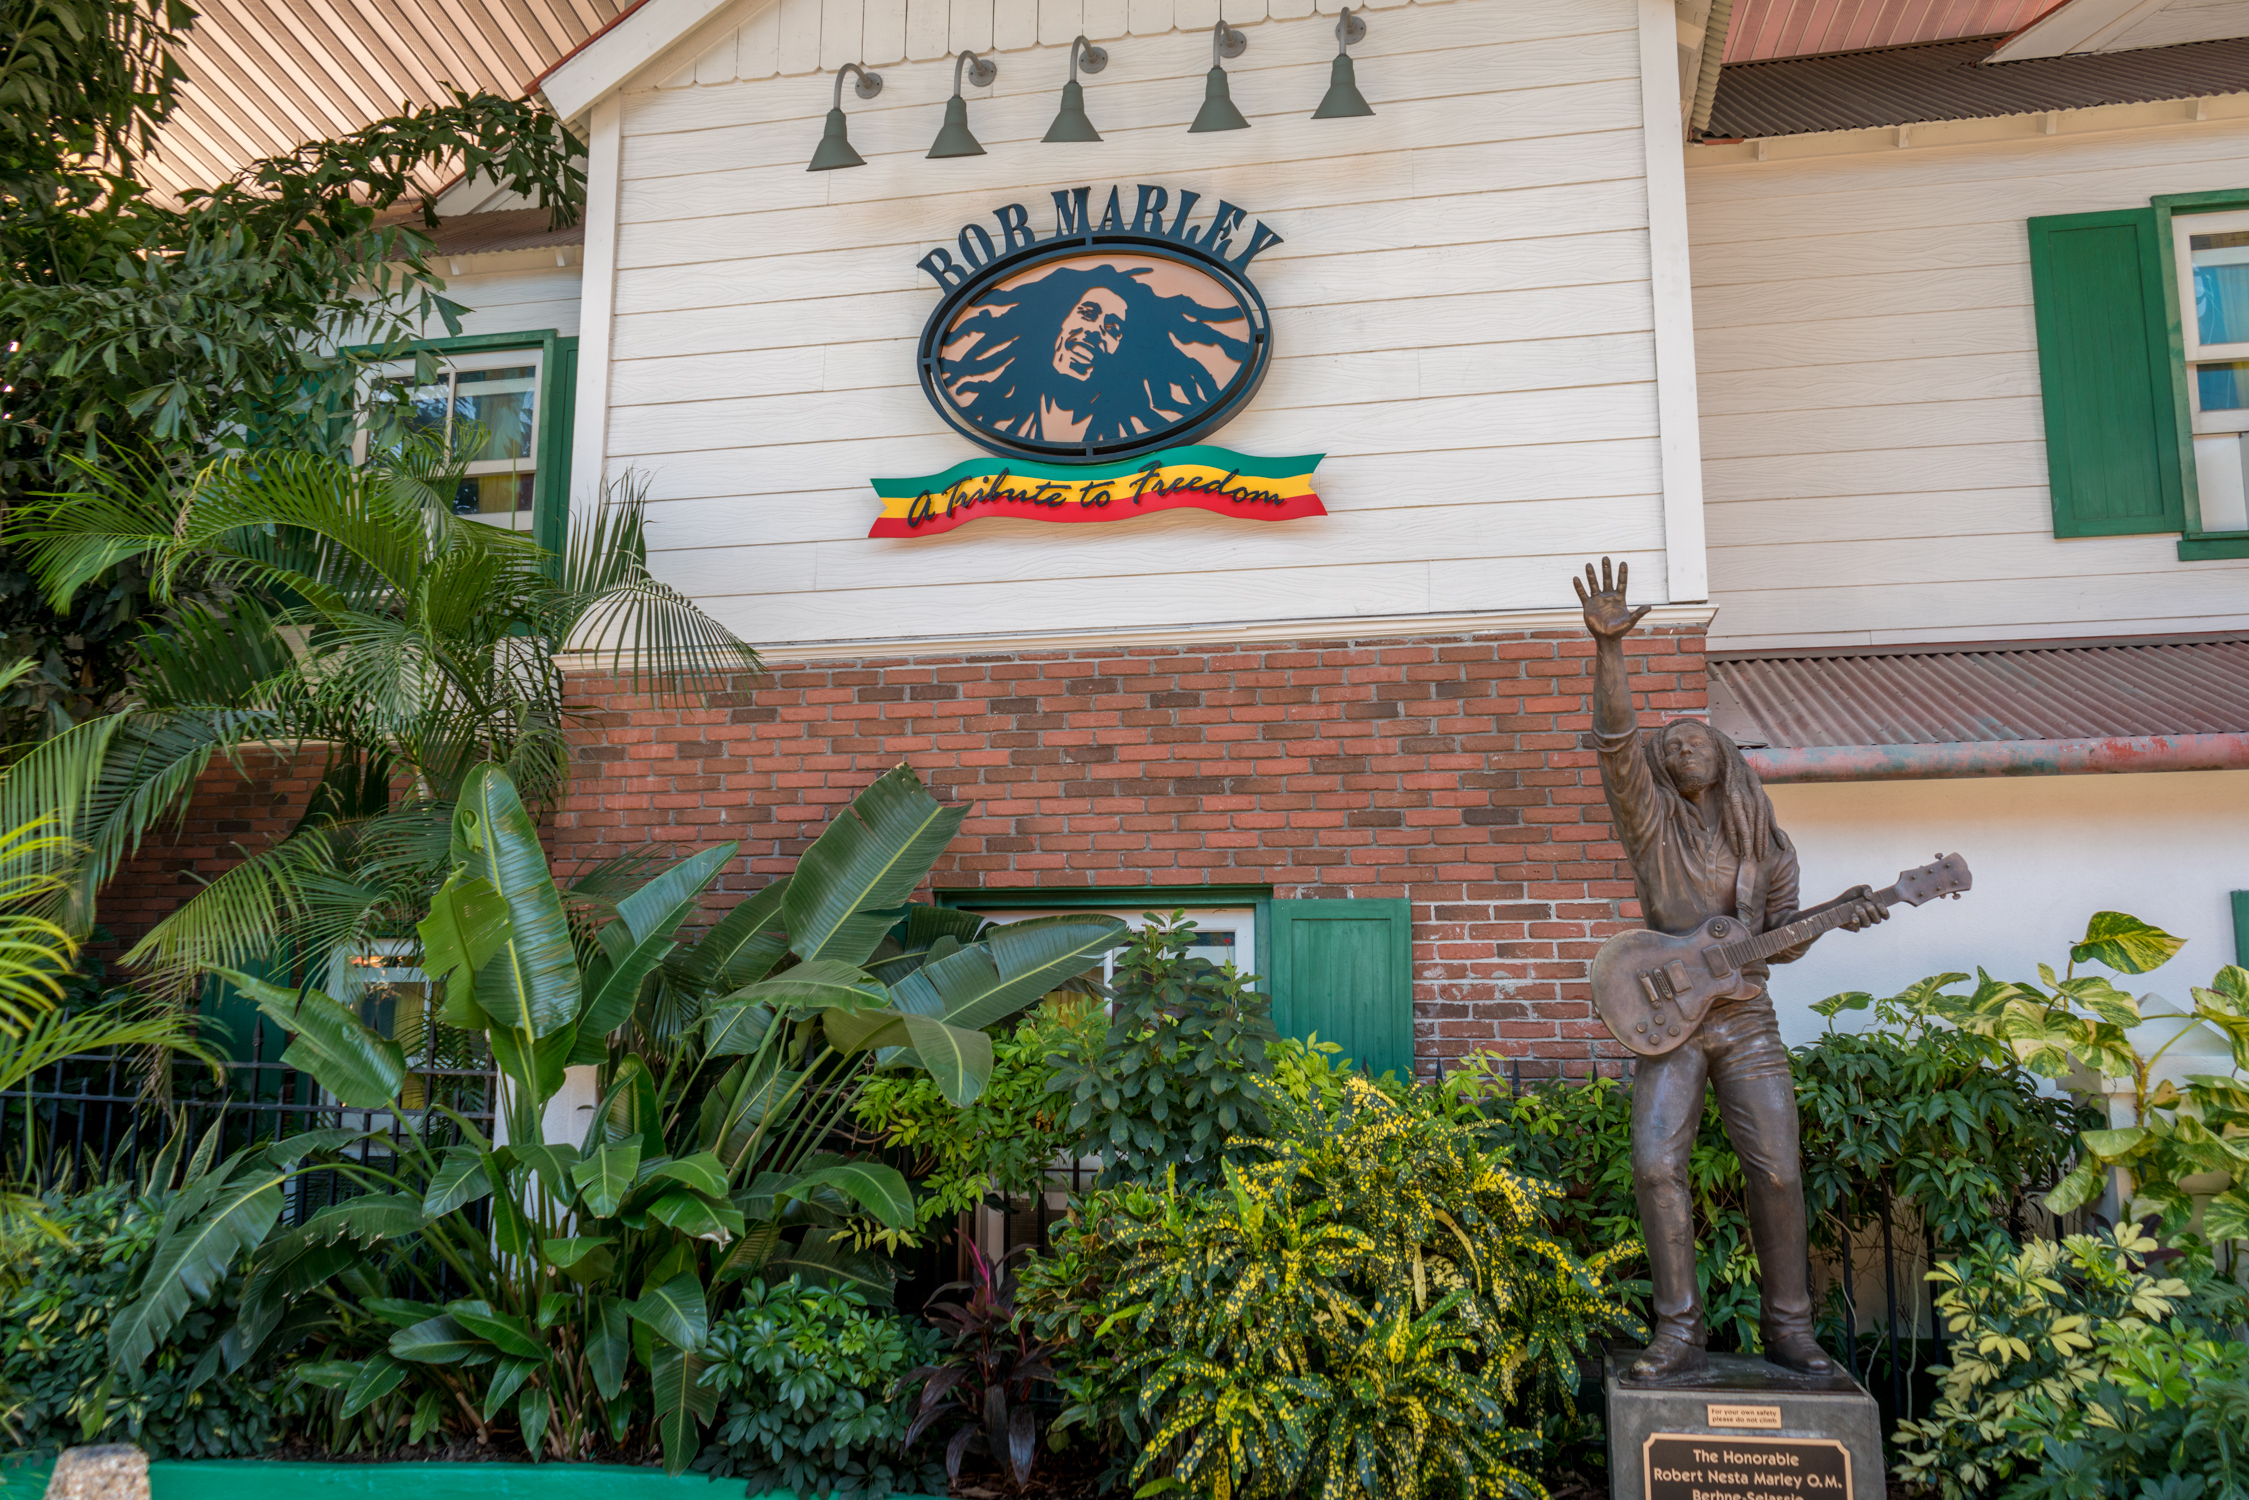 Bob Marley – A Tribute to Freedom features a bronze statue of Marley out front.